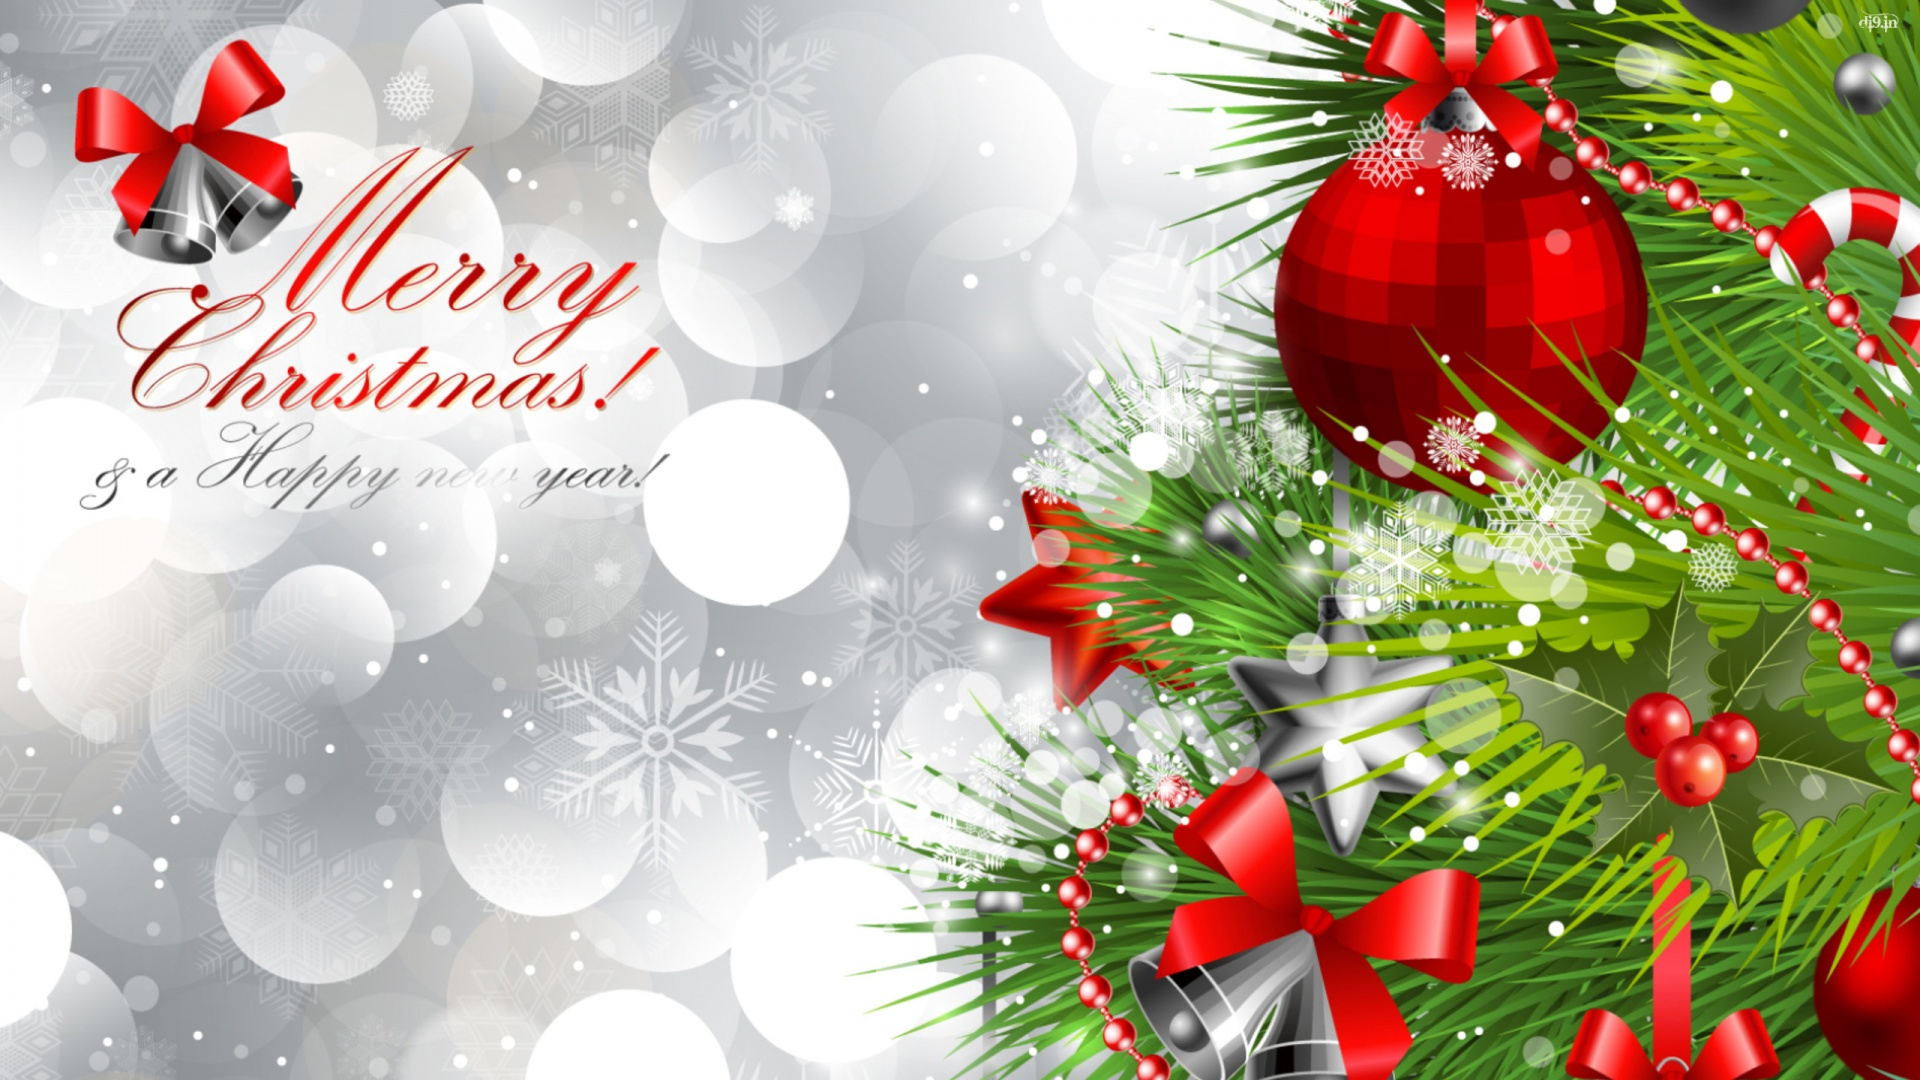 Wallpaper For Merry Christmas